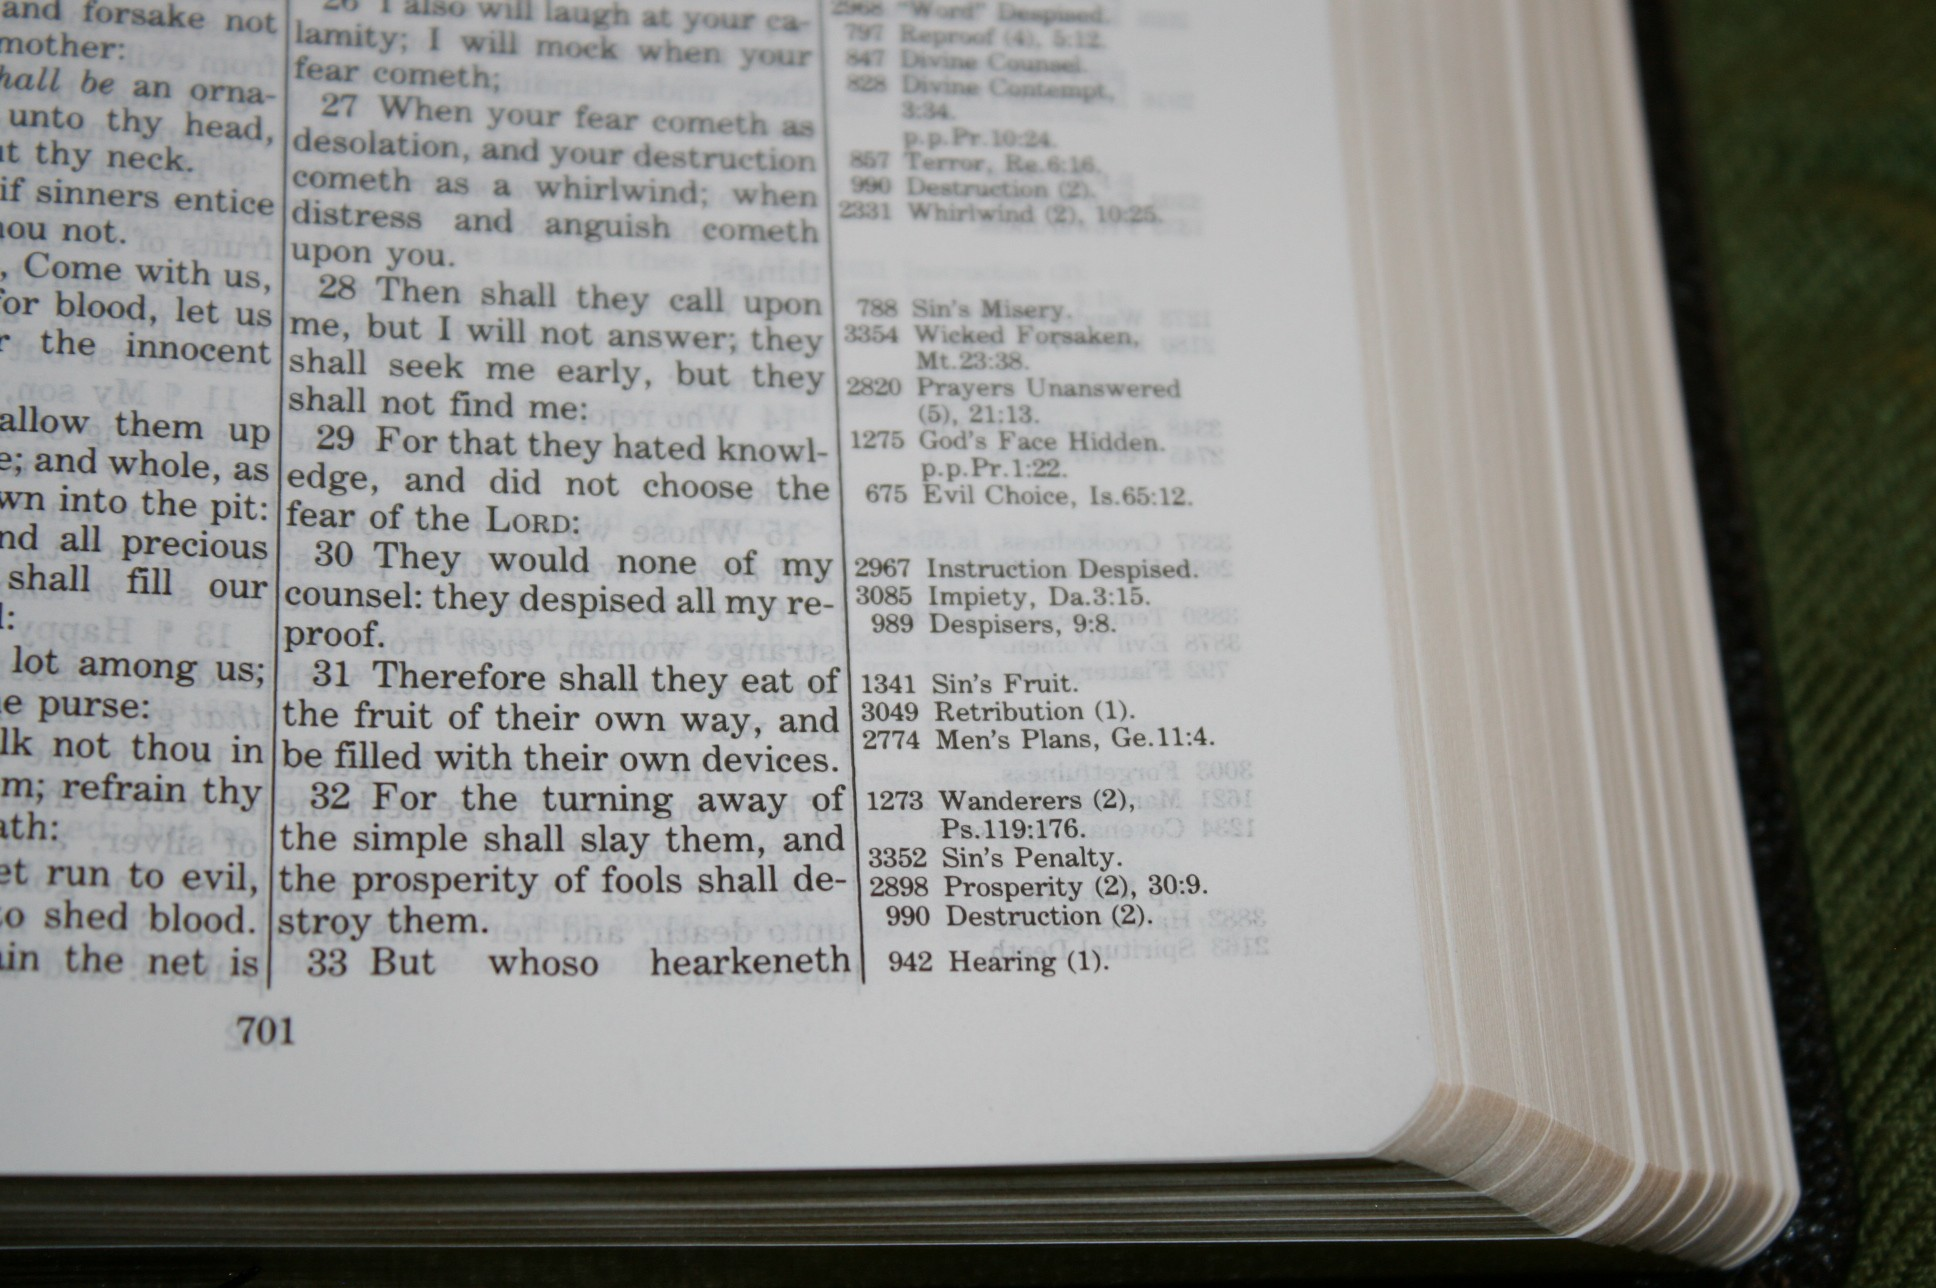 Handy Size Thompson Chain Reference Bible KJV (87)